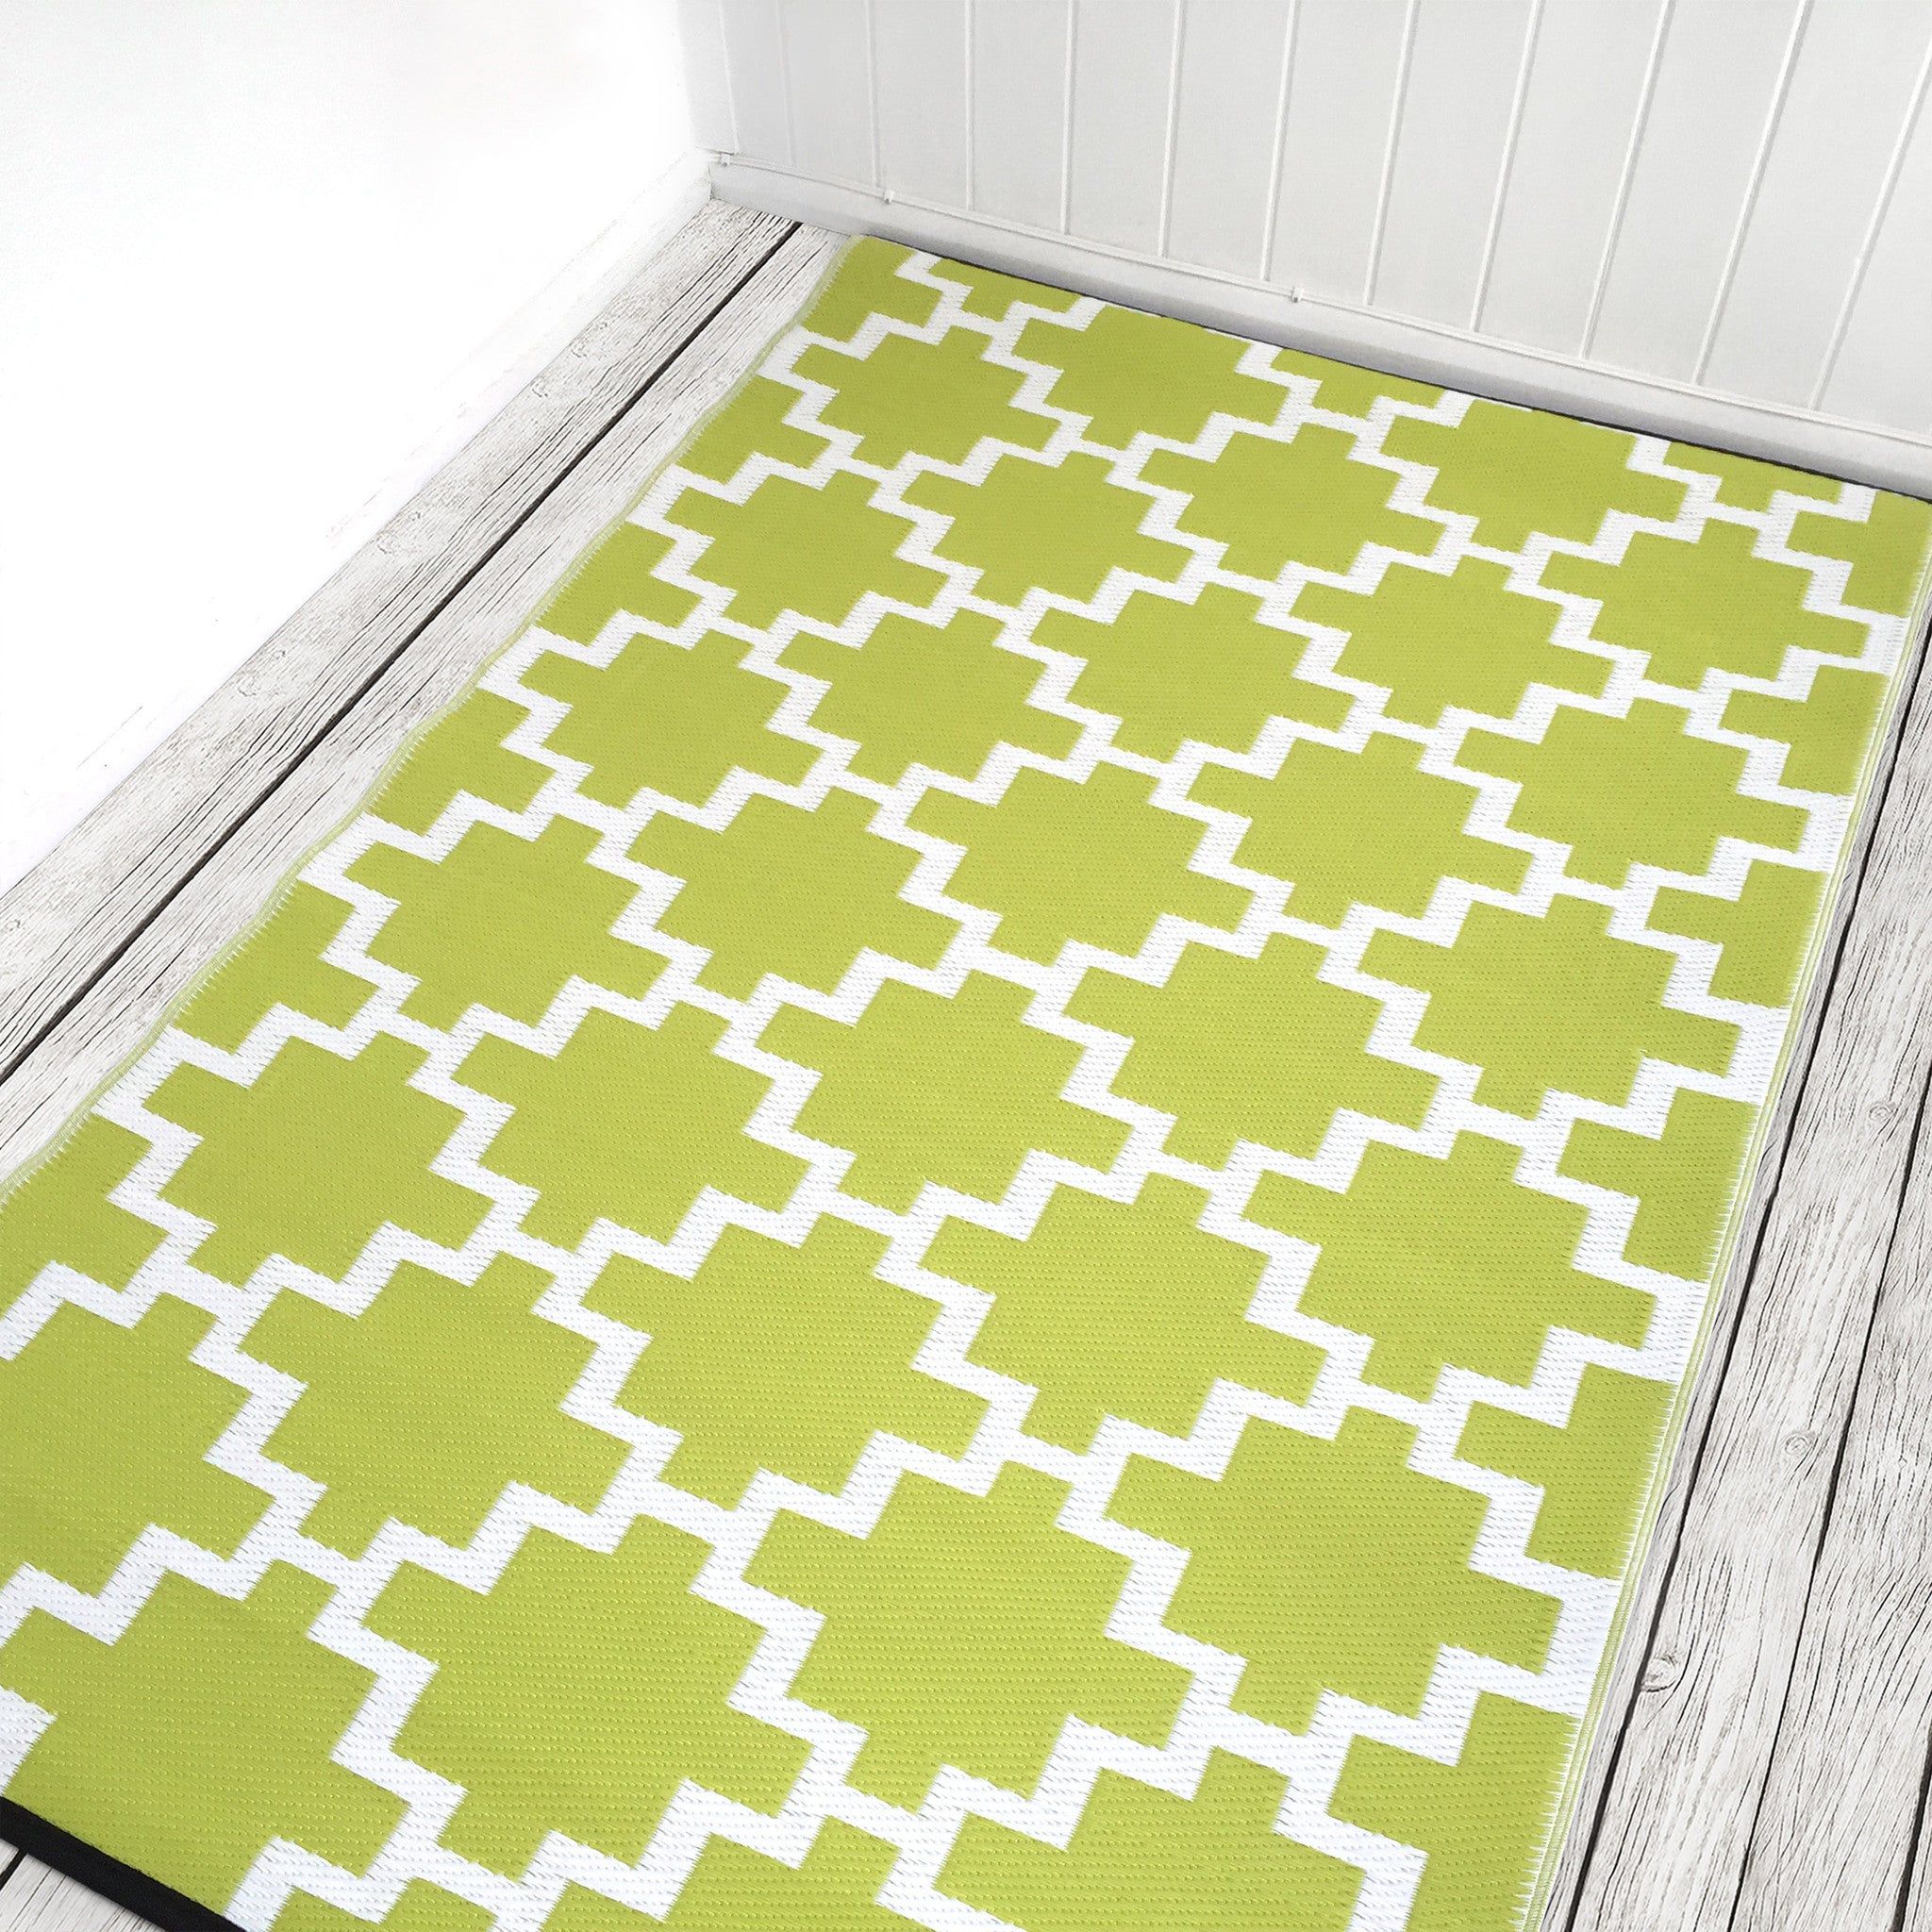 Solitude Celery Green Rug - greendecore.co.uk - 9